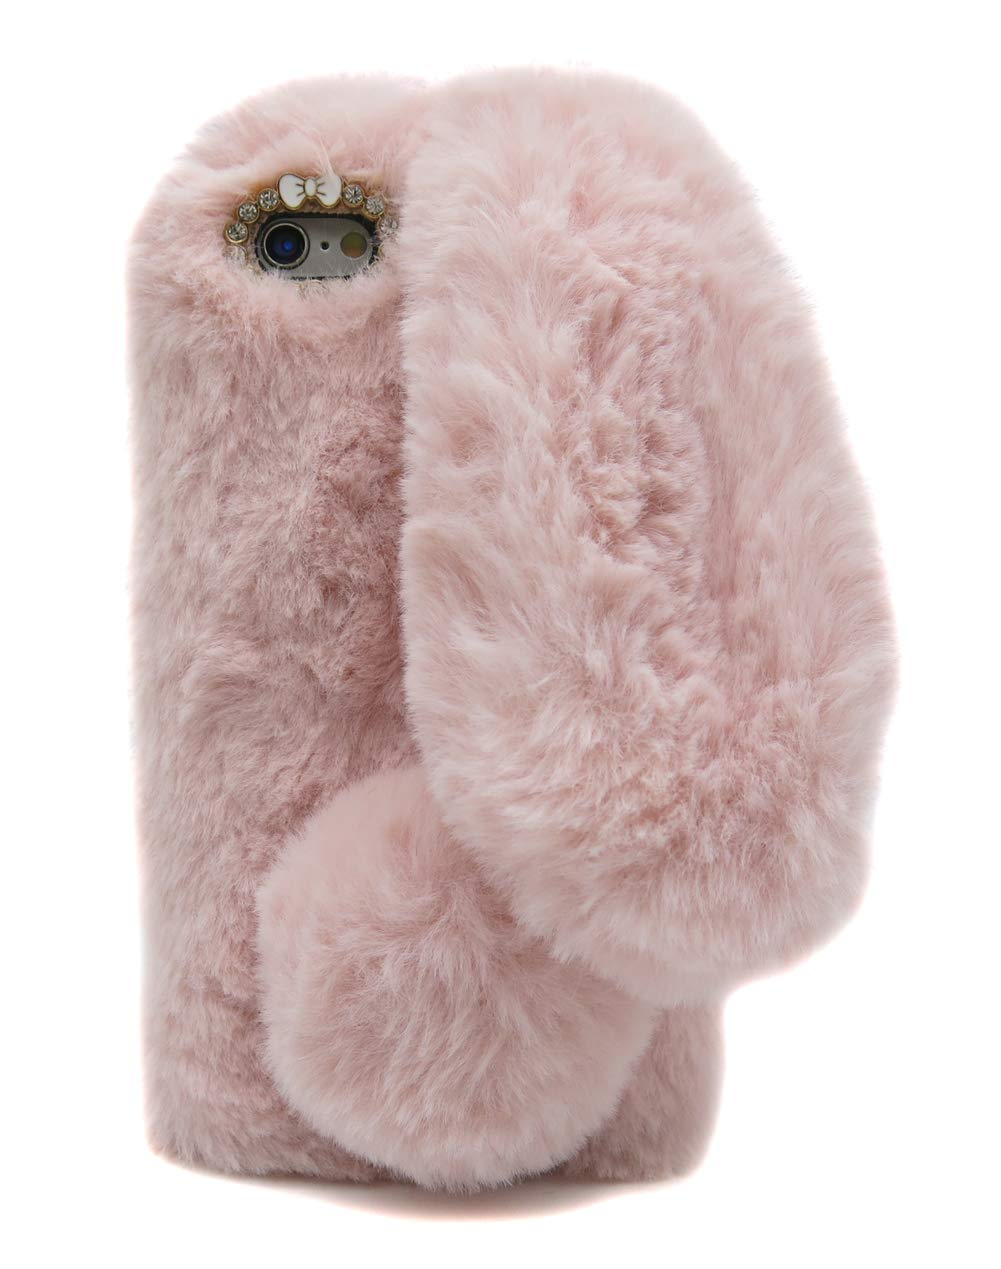 reputable site 3daa3 878d7 Furry Case Ears iPhone 6Plus Rose Pink, Fluffy Rabbit Case iPhone 6S Plus,  Fashion Pom Pom Faux Furry Bunny Case iPhone 6Plus & iPhone 6S Plus Soft ...